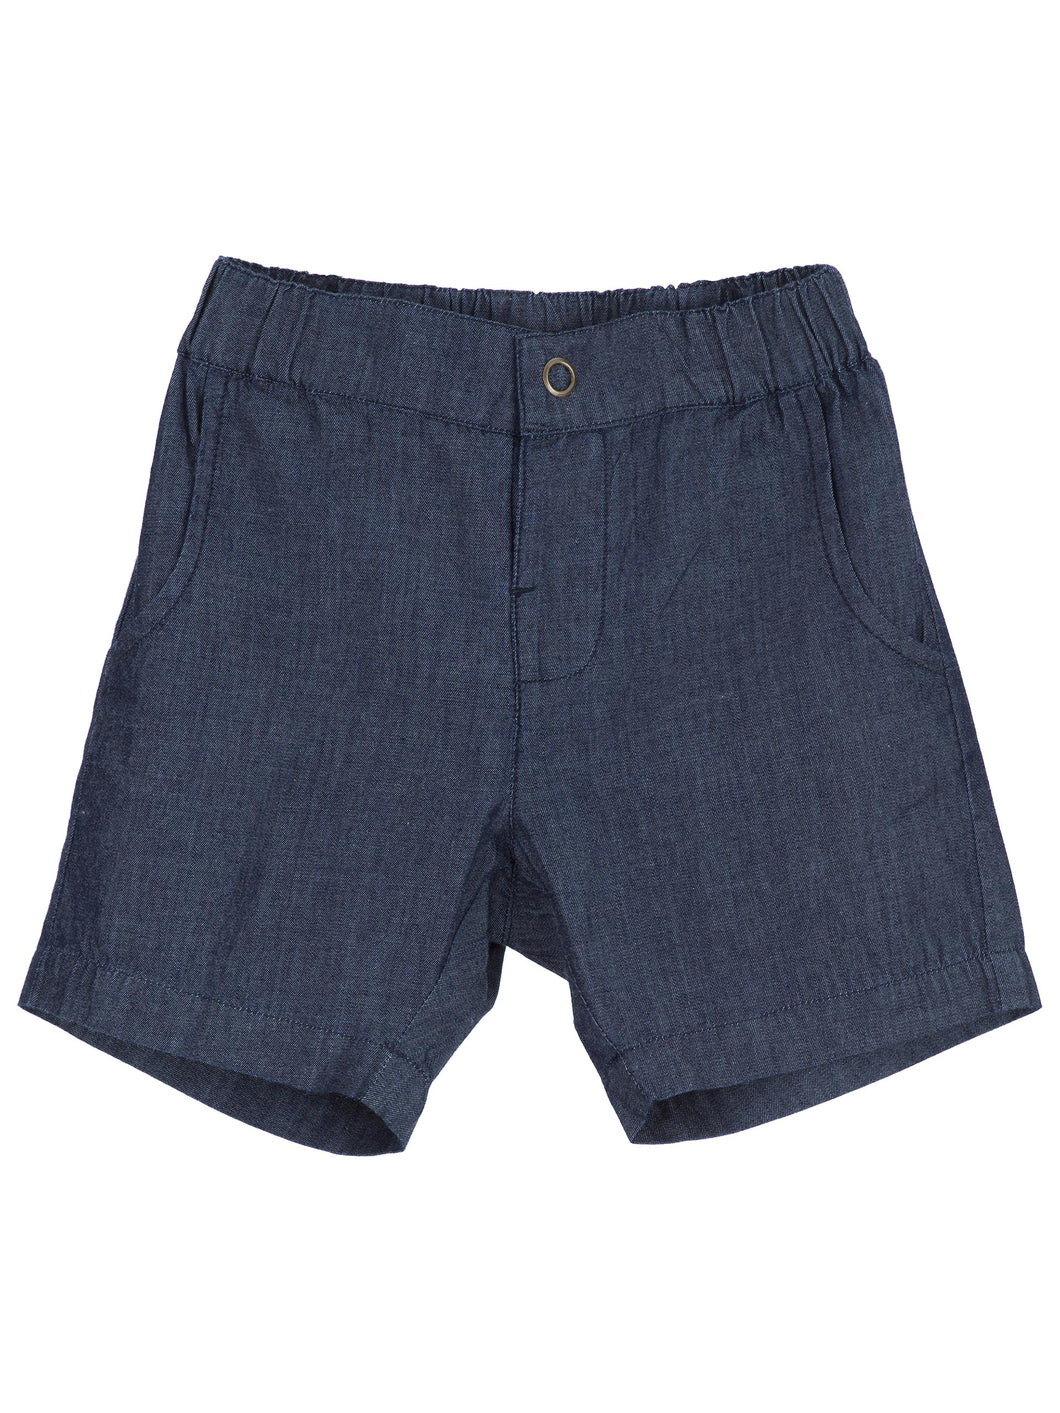 Serendipity Shorts - Denim